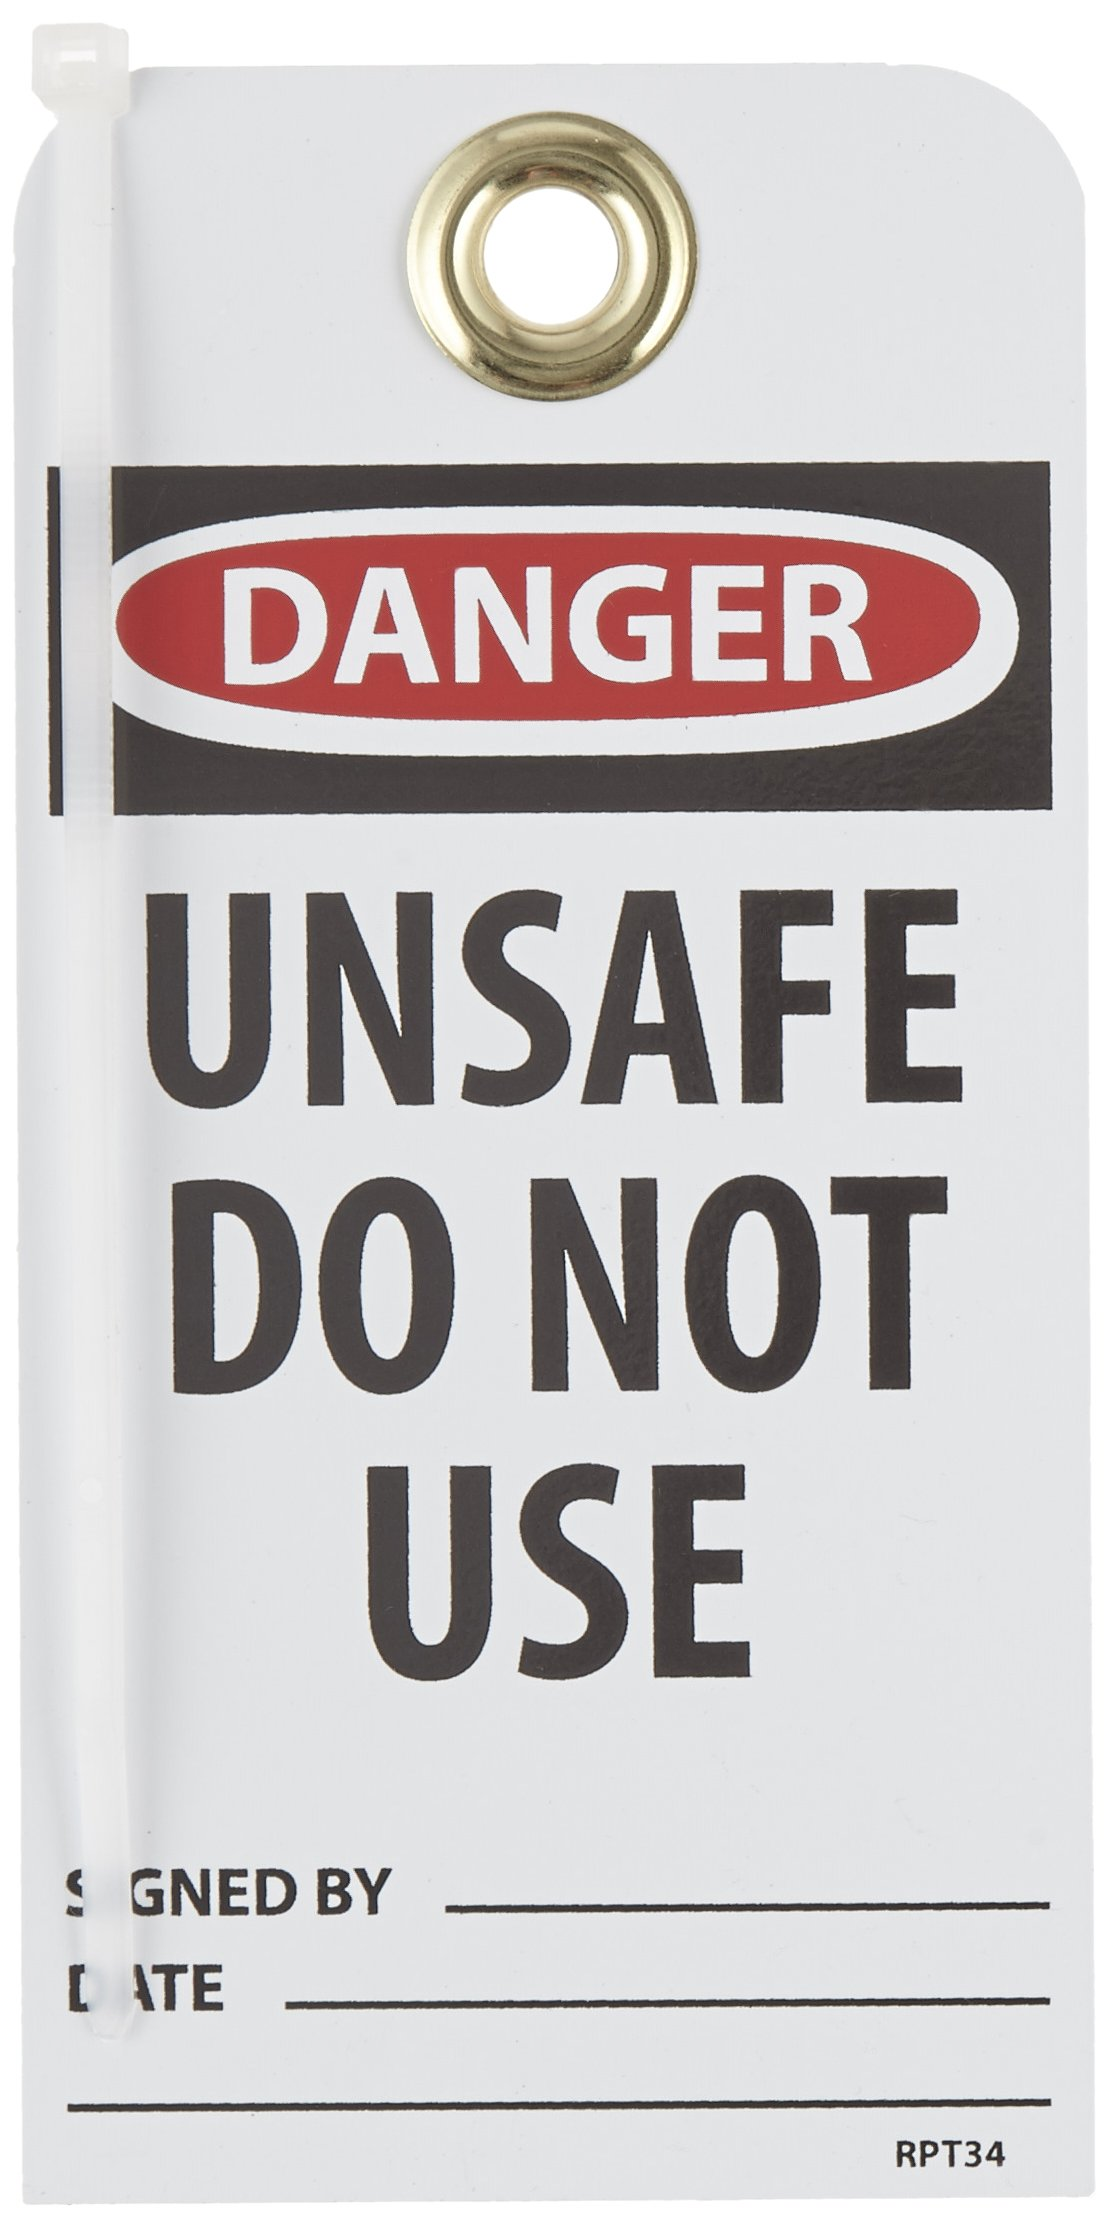 NMC RPT34G''DNAGER - UNSAFE DO NOT USE'' Accident Prevention Tag with Brass Grommet, Unrippable Vinyl, 3'' Length, 6'' Height, Black/Red on White (Pack of 25)